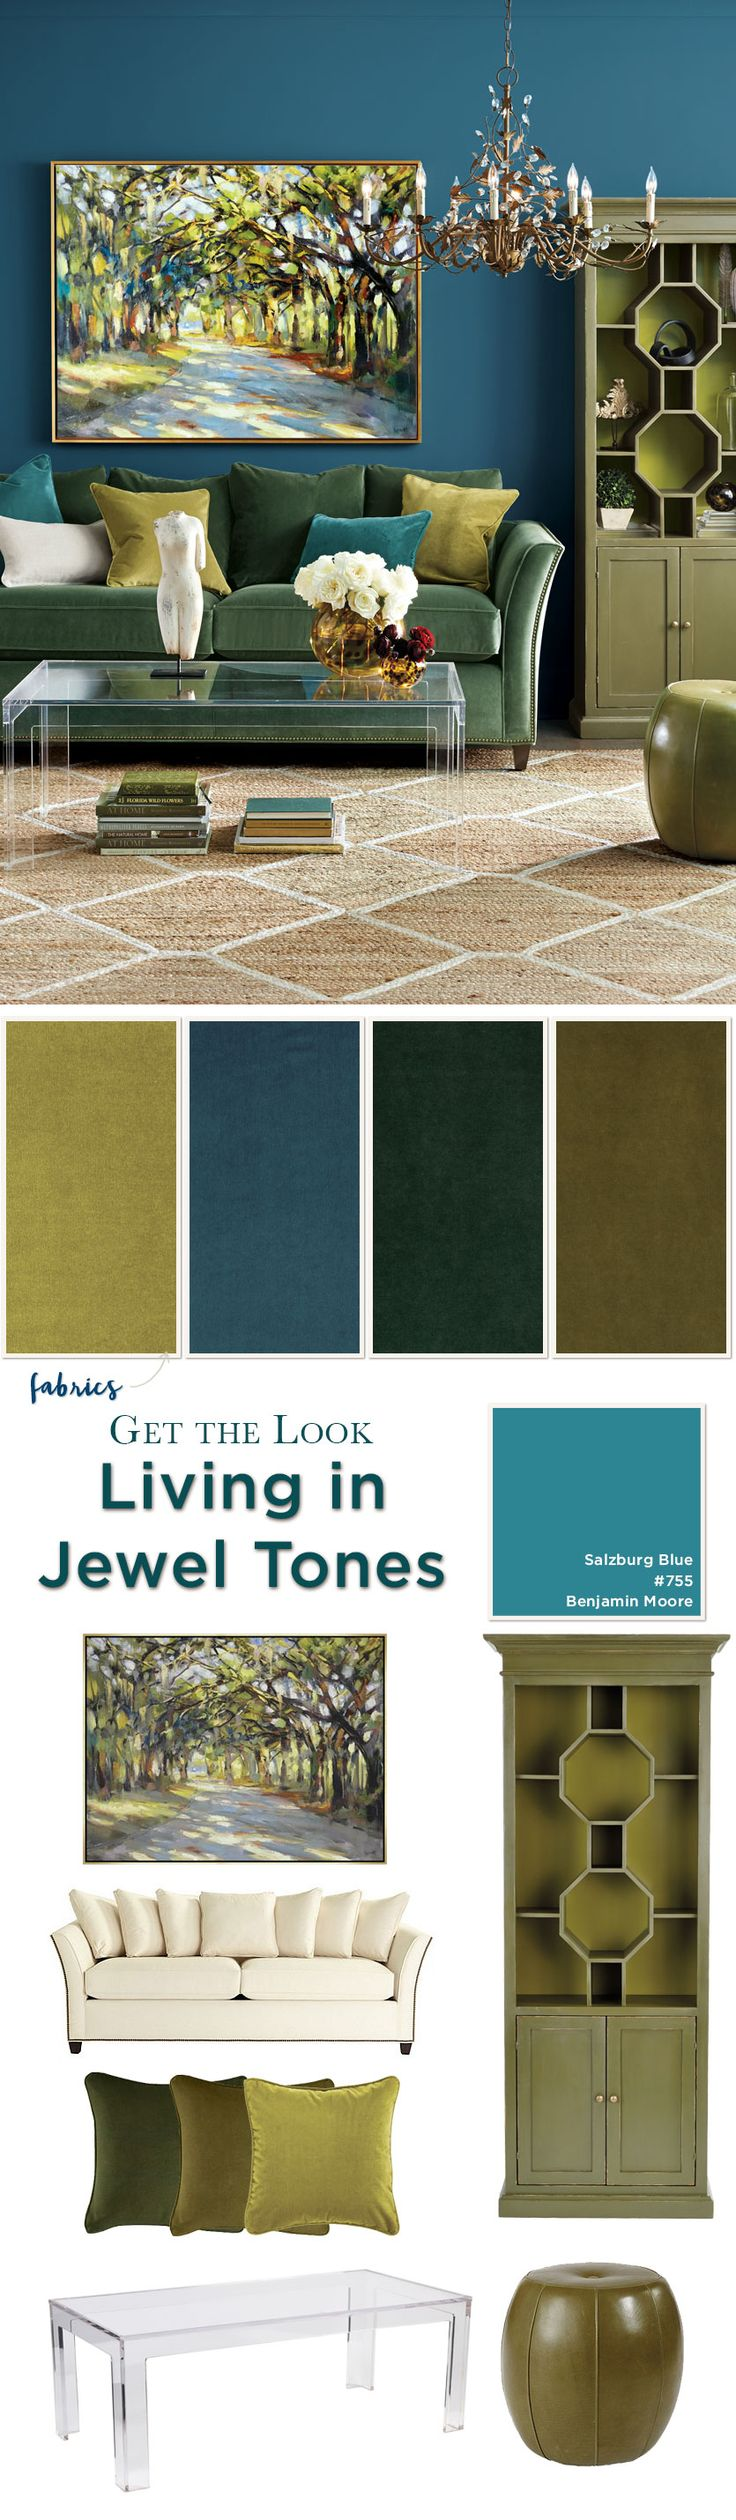 Decorating A Living Room With Jewel Tones